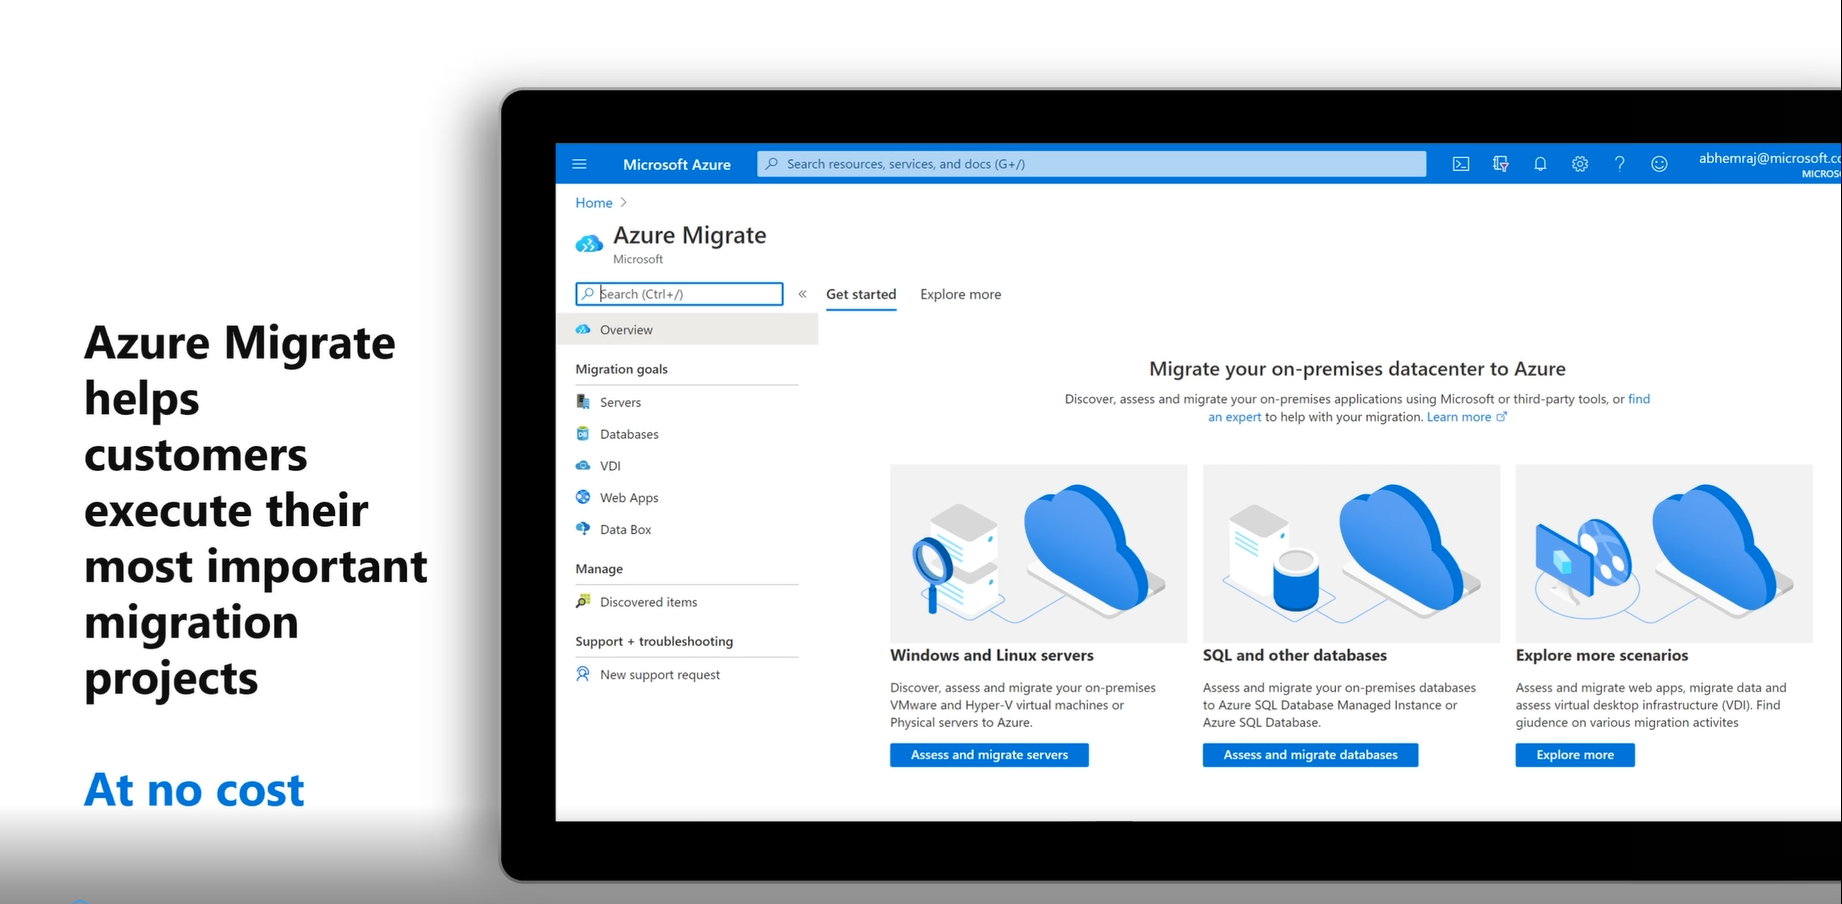 Azure Migrate Features Overview